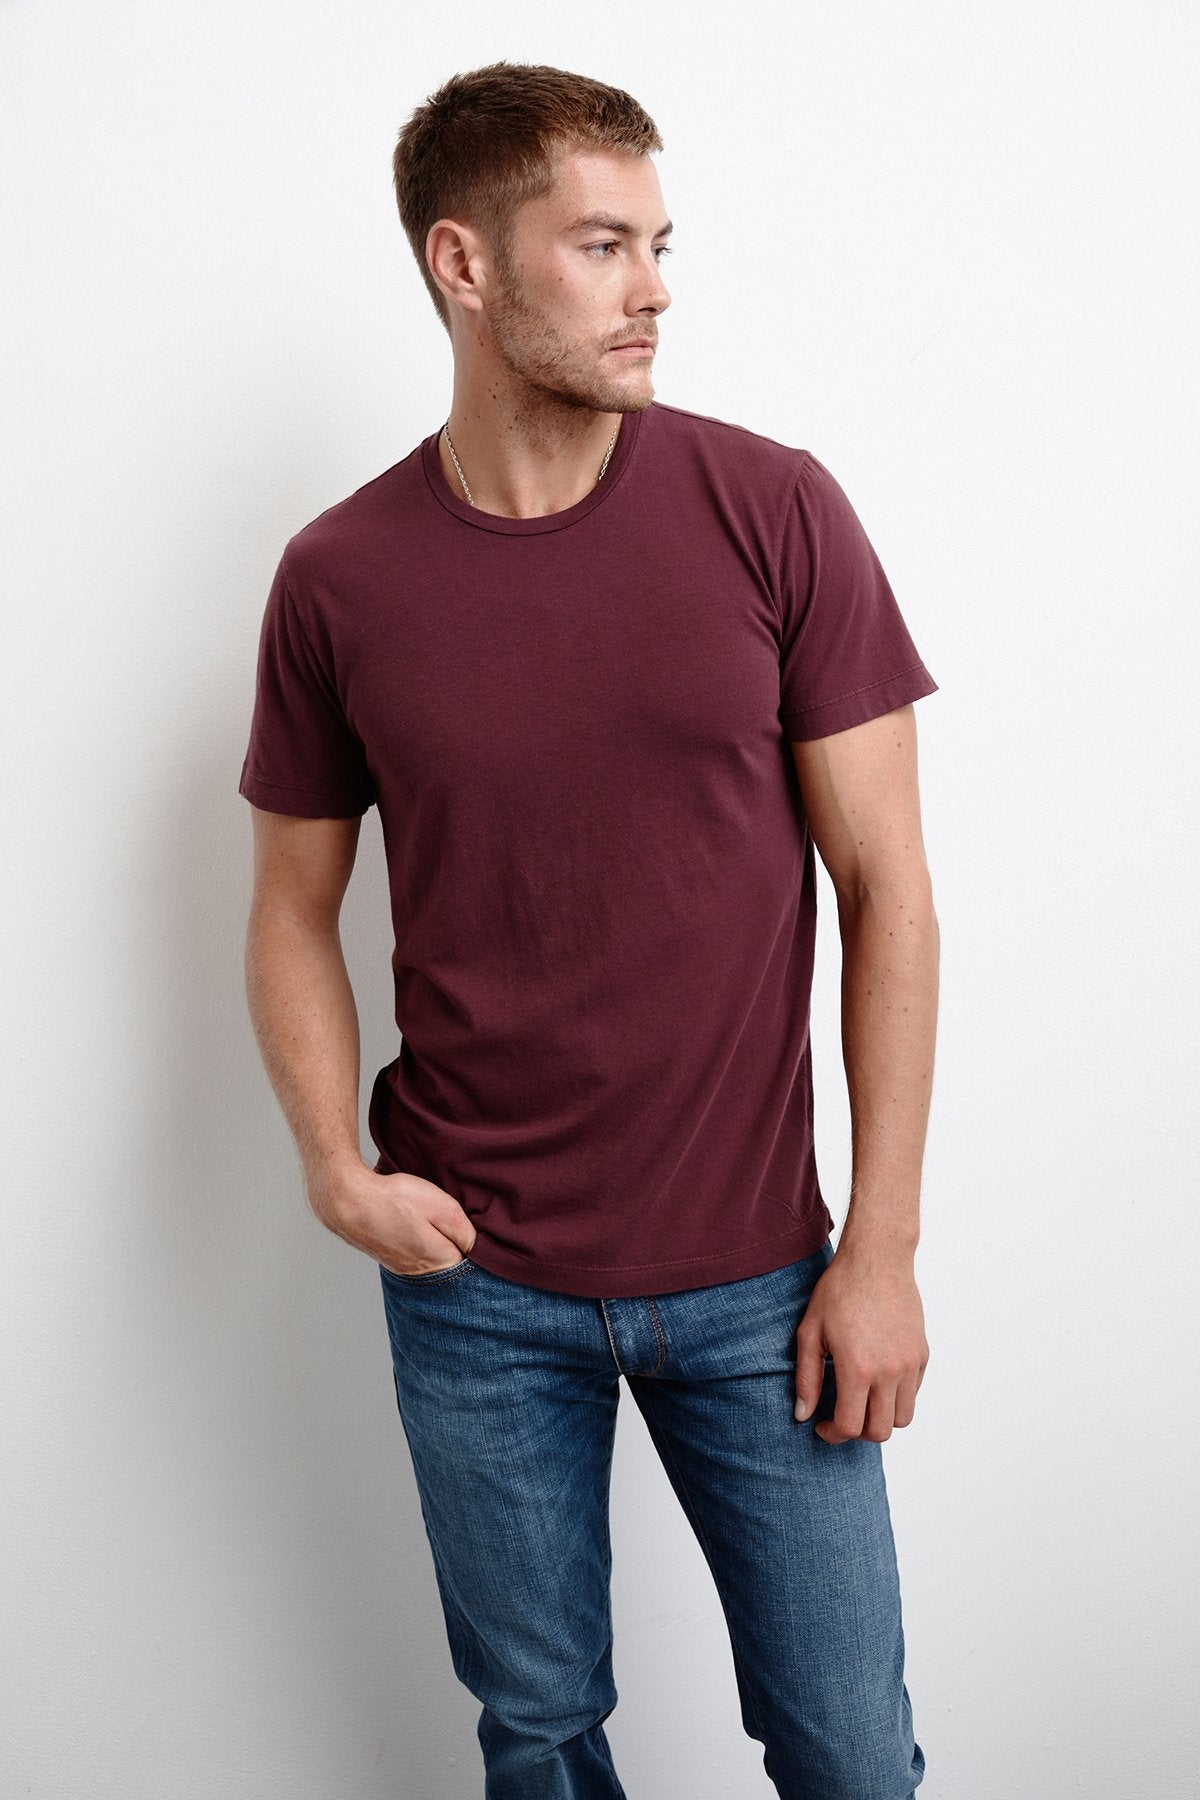 HOWARD WHISPER CLASSIC CREW NECK TEE IN CONCORD